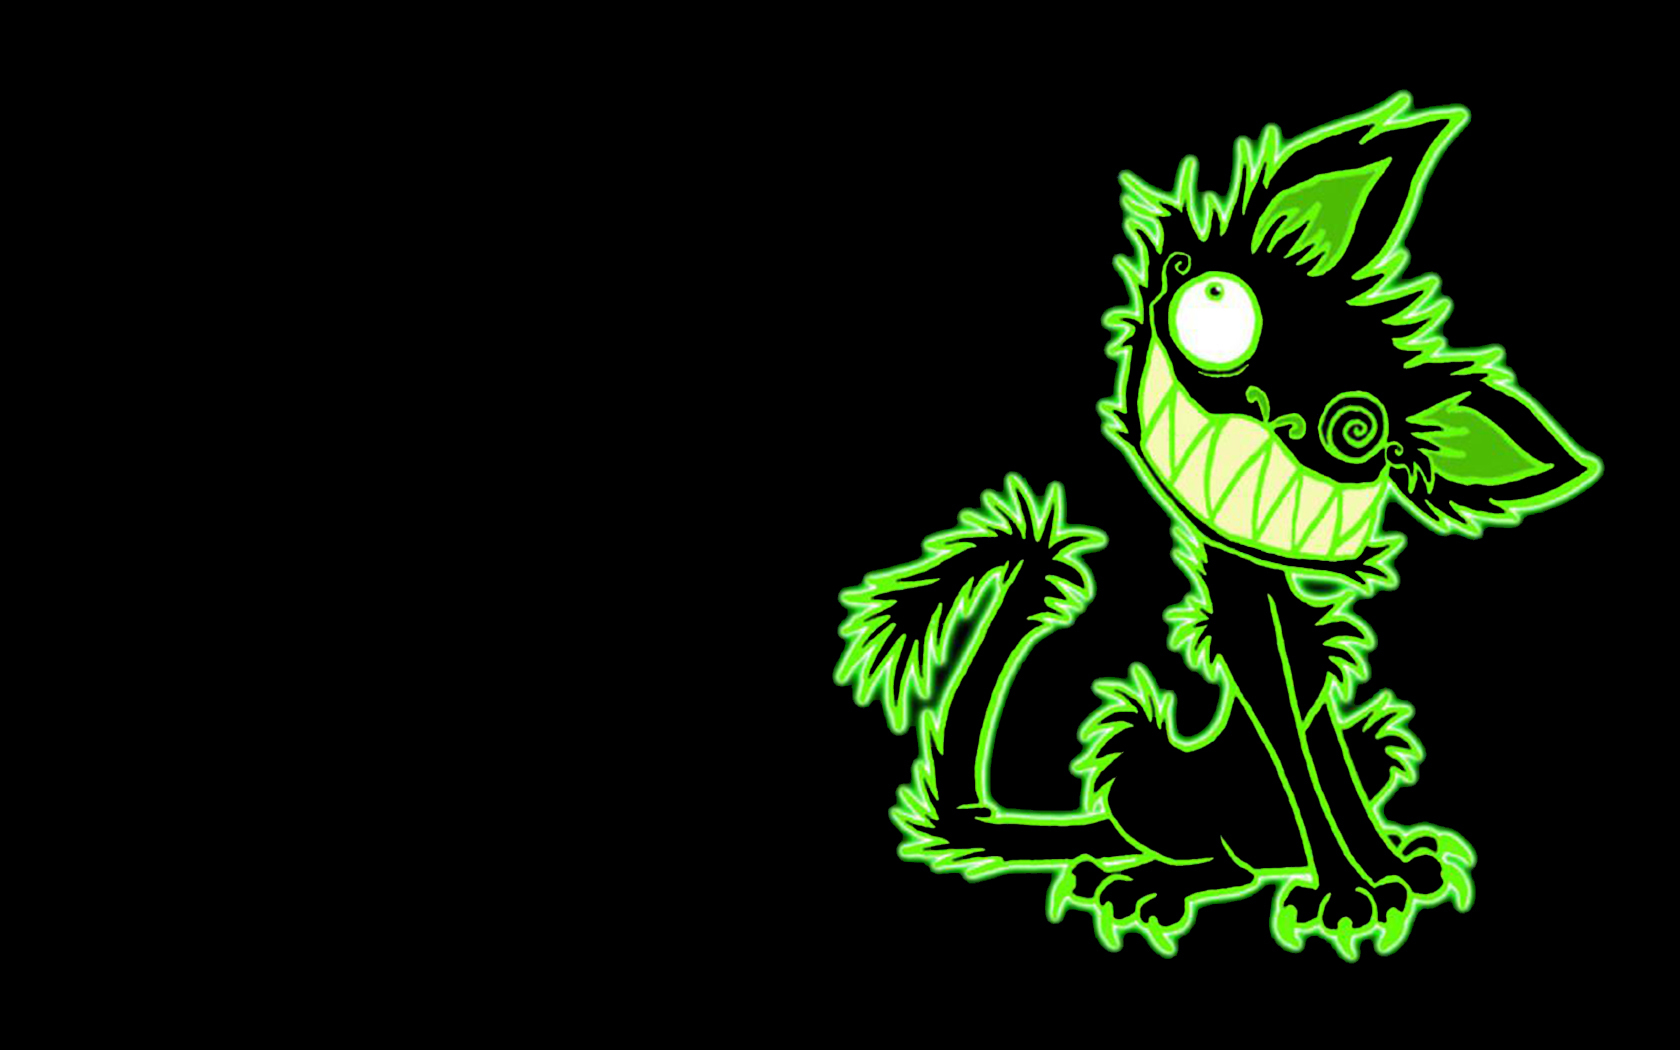 Green cat on the black background wallpapers and images   wallpapers 1680x1050